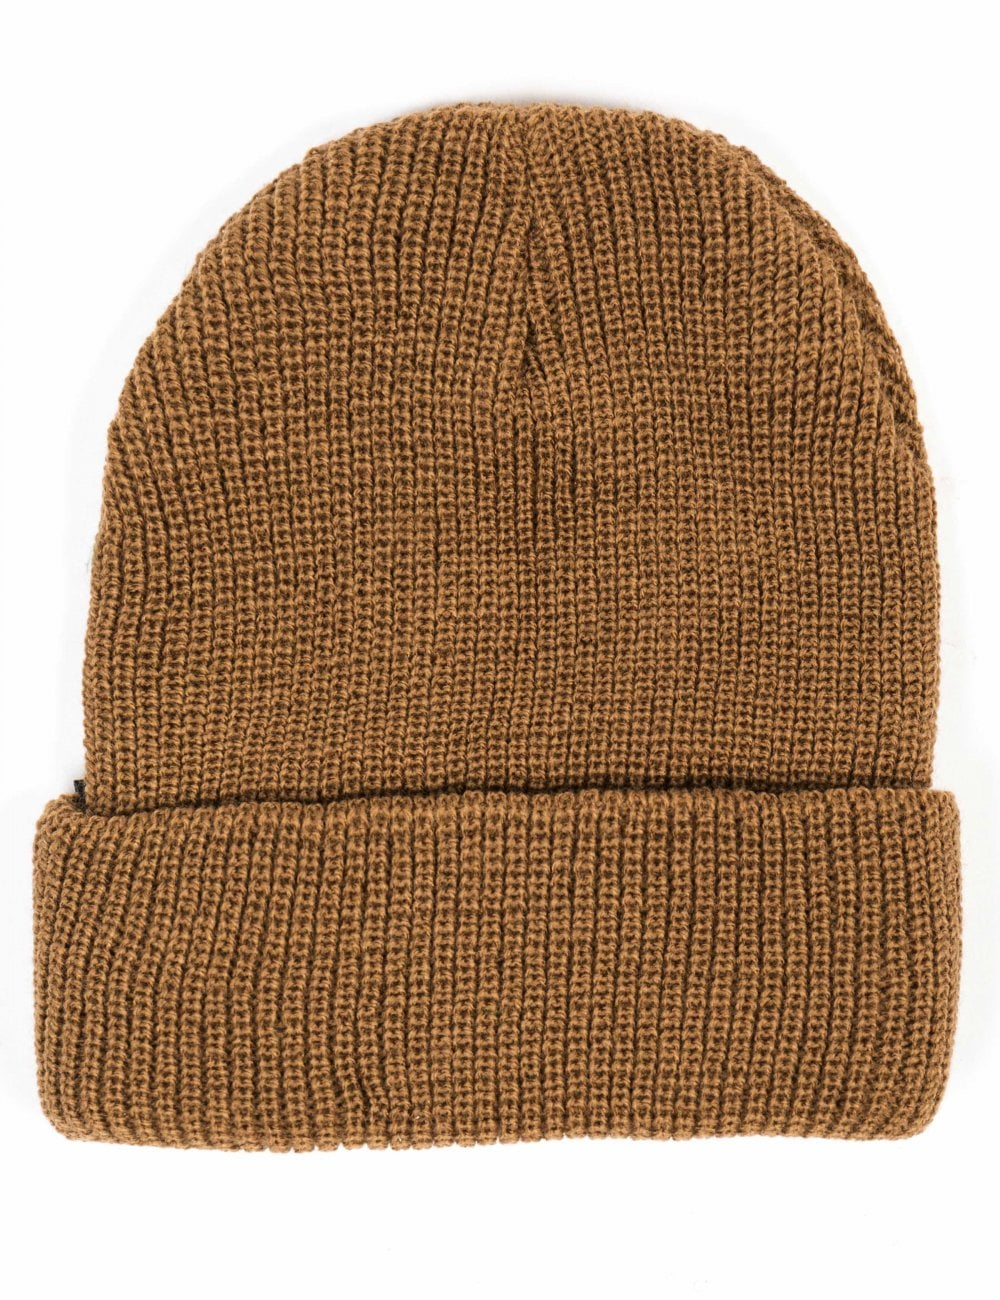 35af9619c Heist Beanie Hat - Coyote Brown